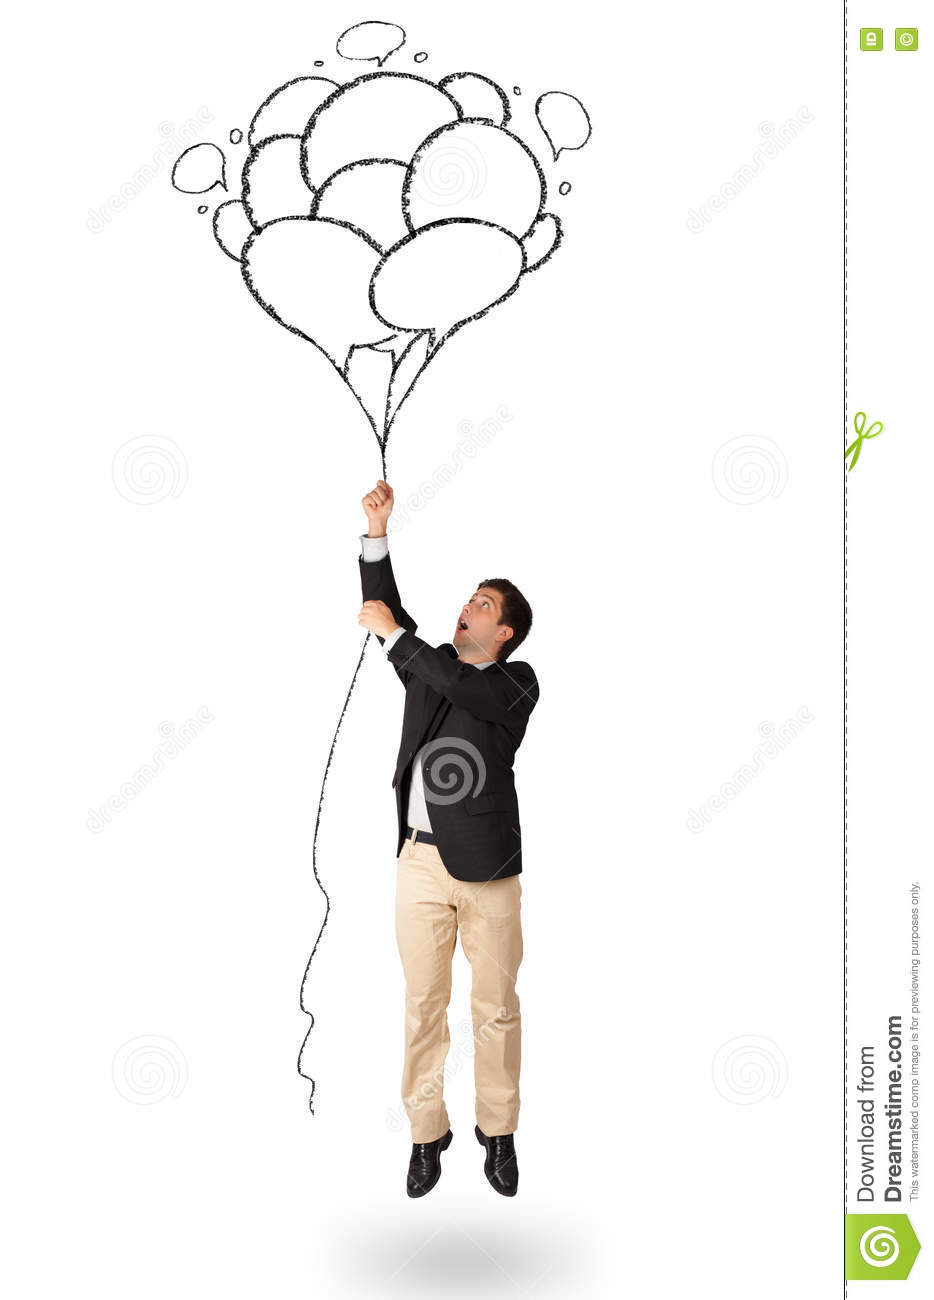 Happy Man Holding Balloons Drawing Stock Image - Image of carefree